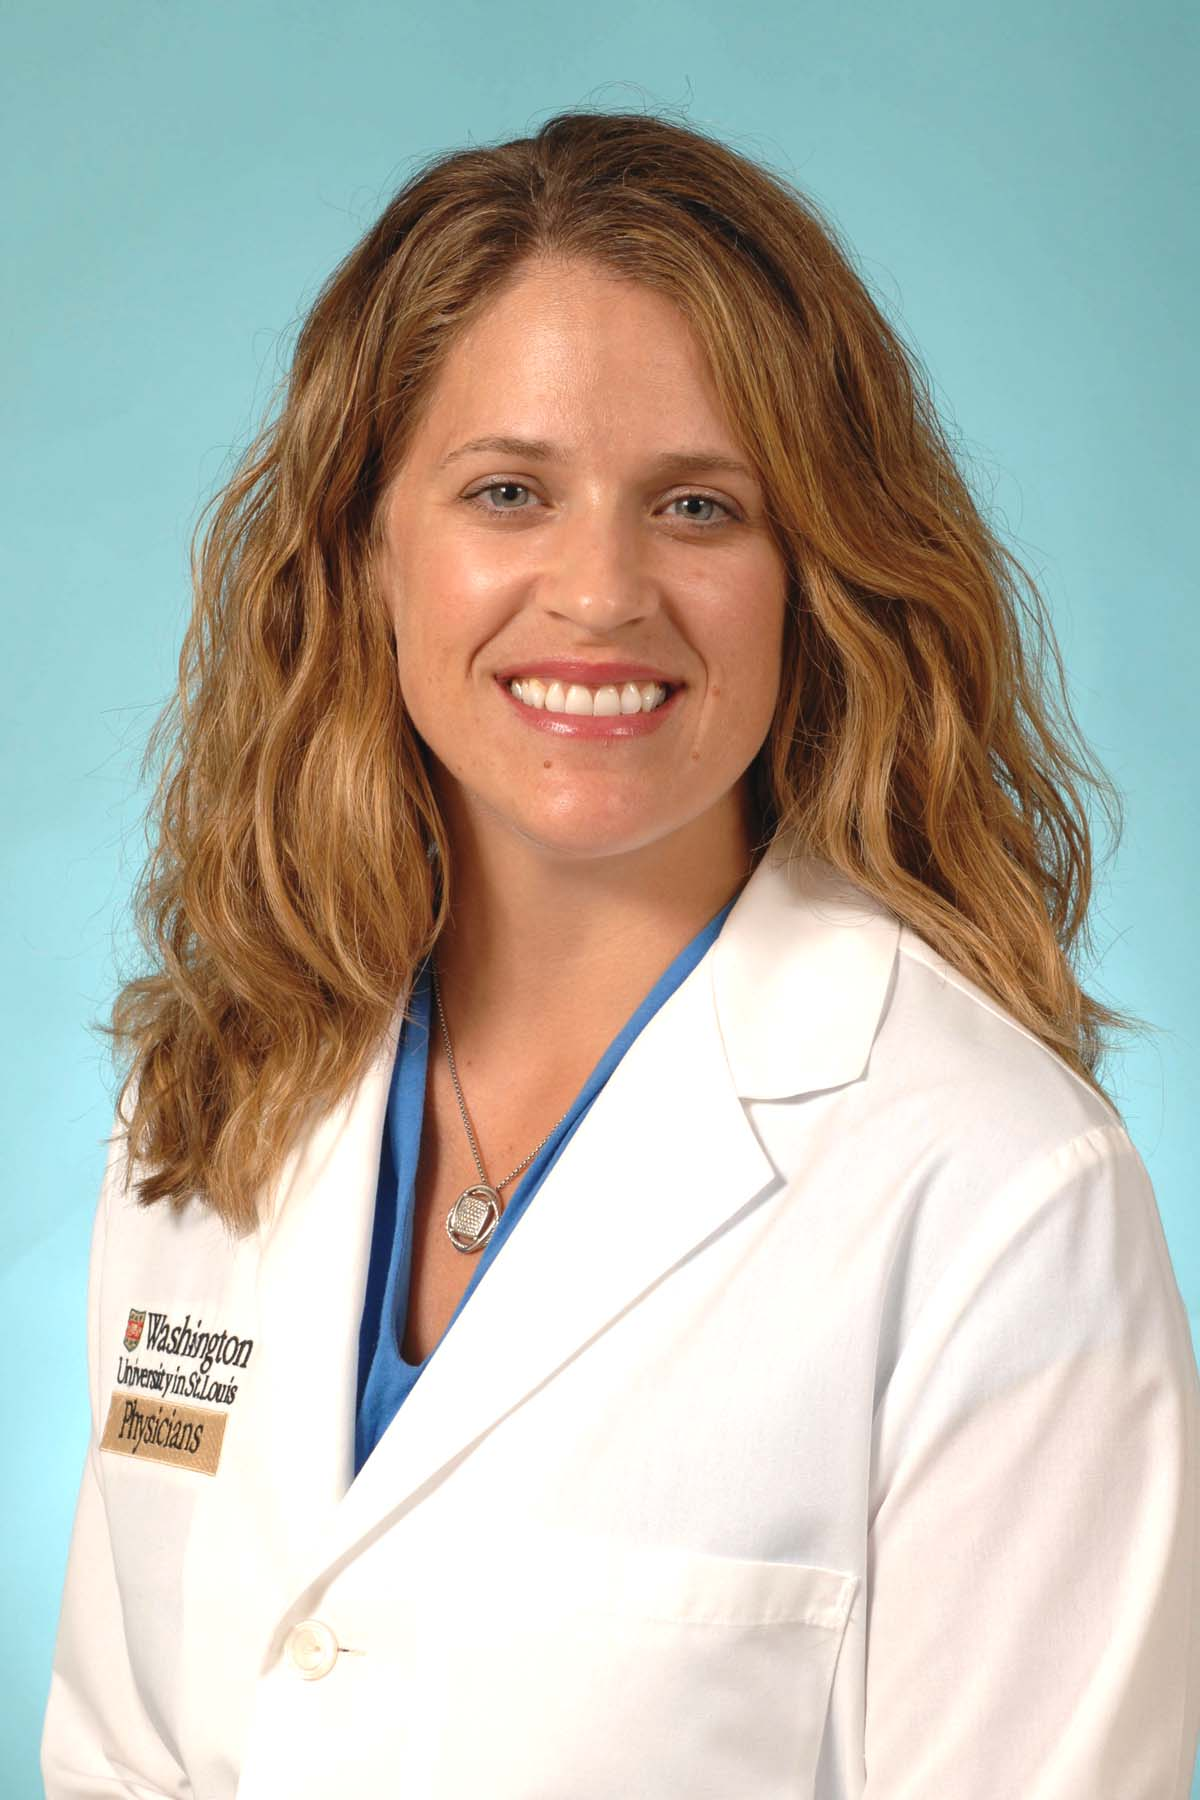 Dr. Amy Moore, MD